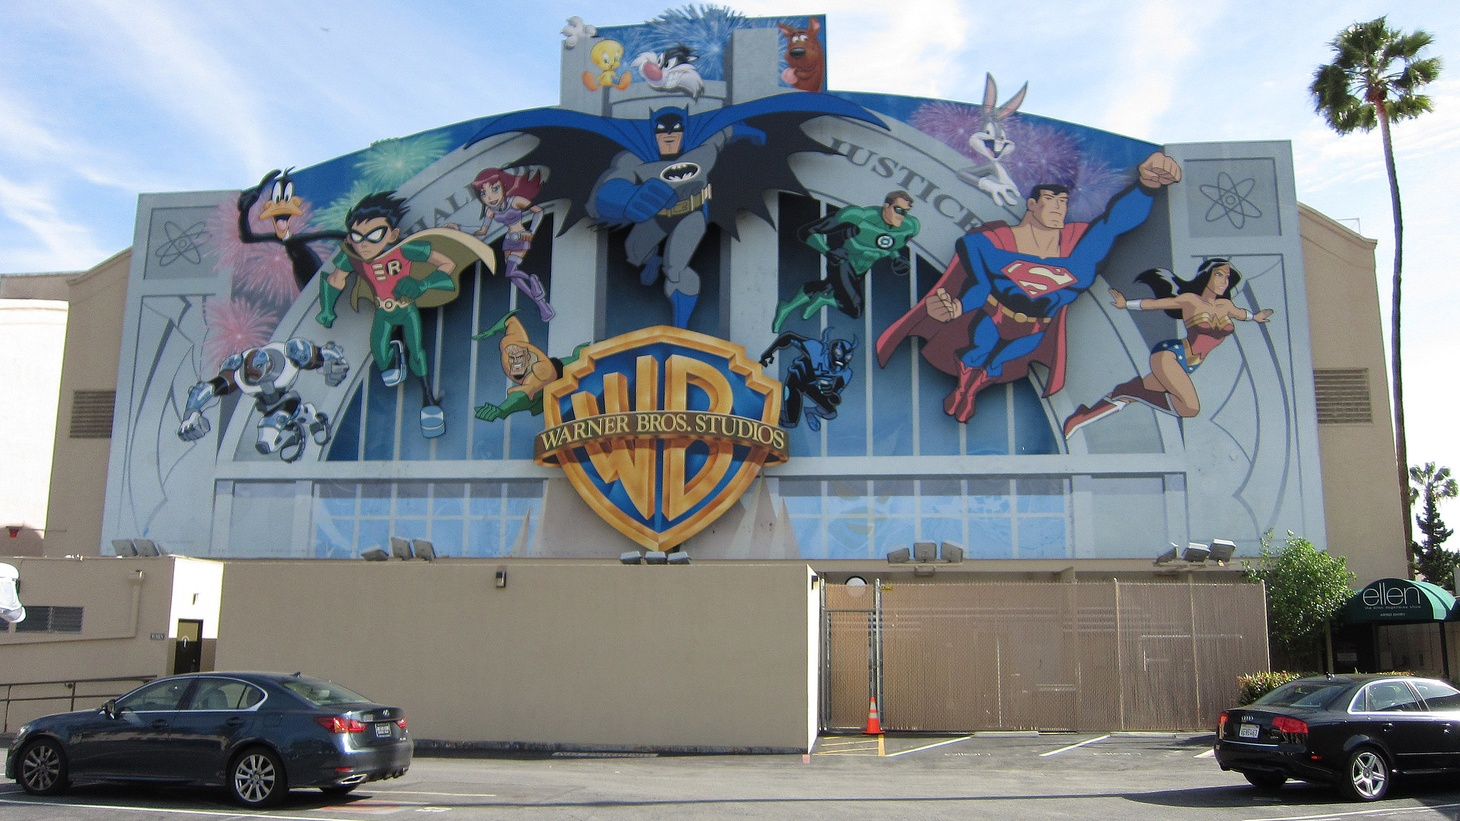 Major layoffs are expected soon in corporations' entertainment divisions, including Warner Bros. and NBCUniversal.